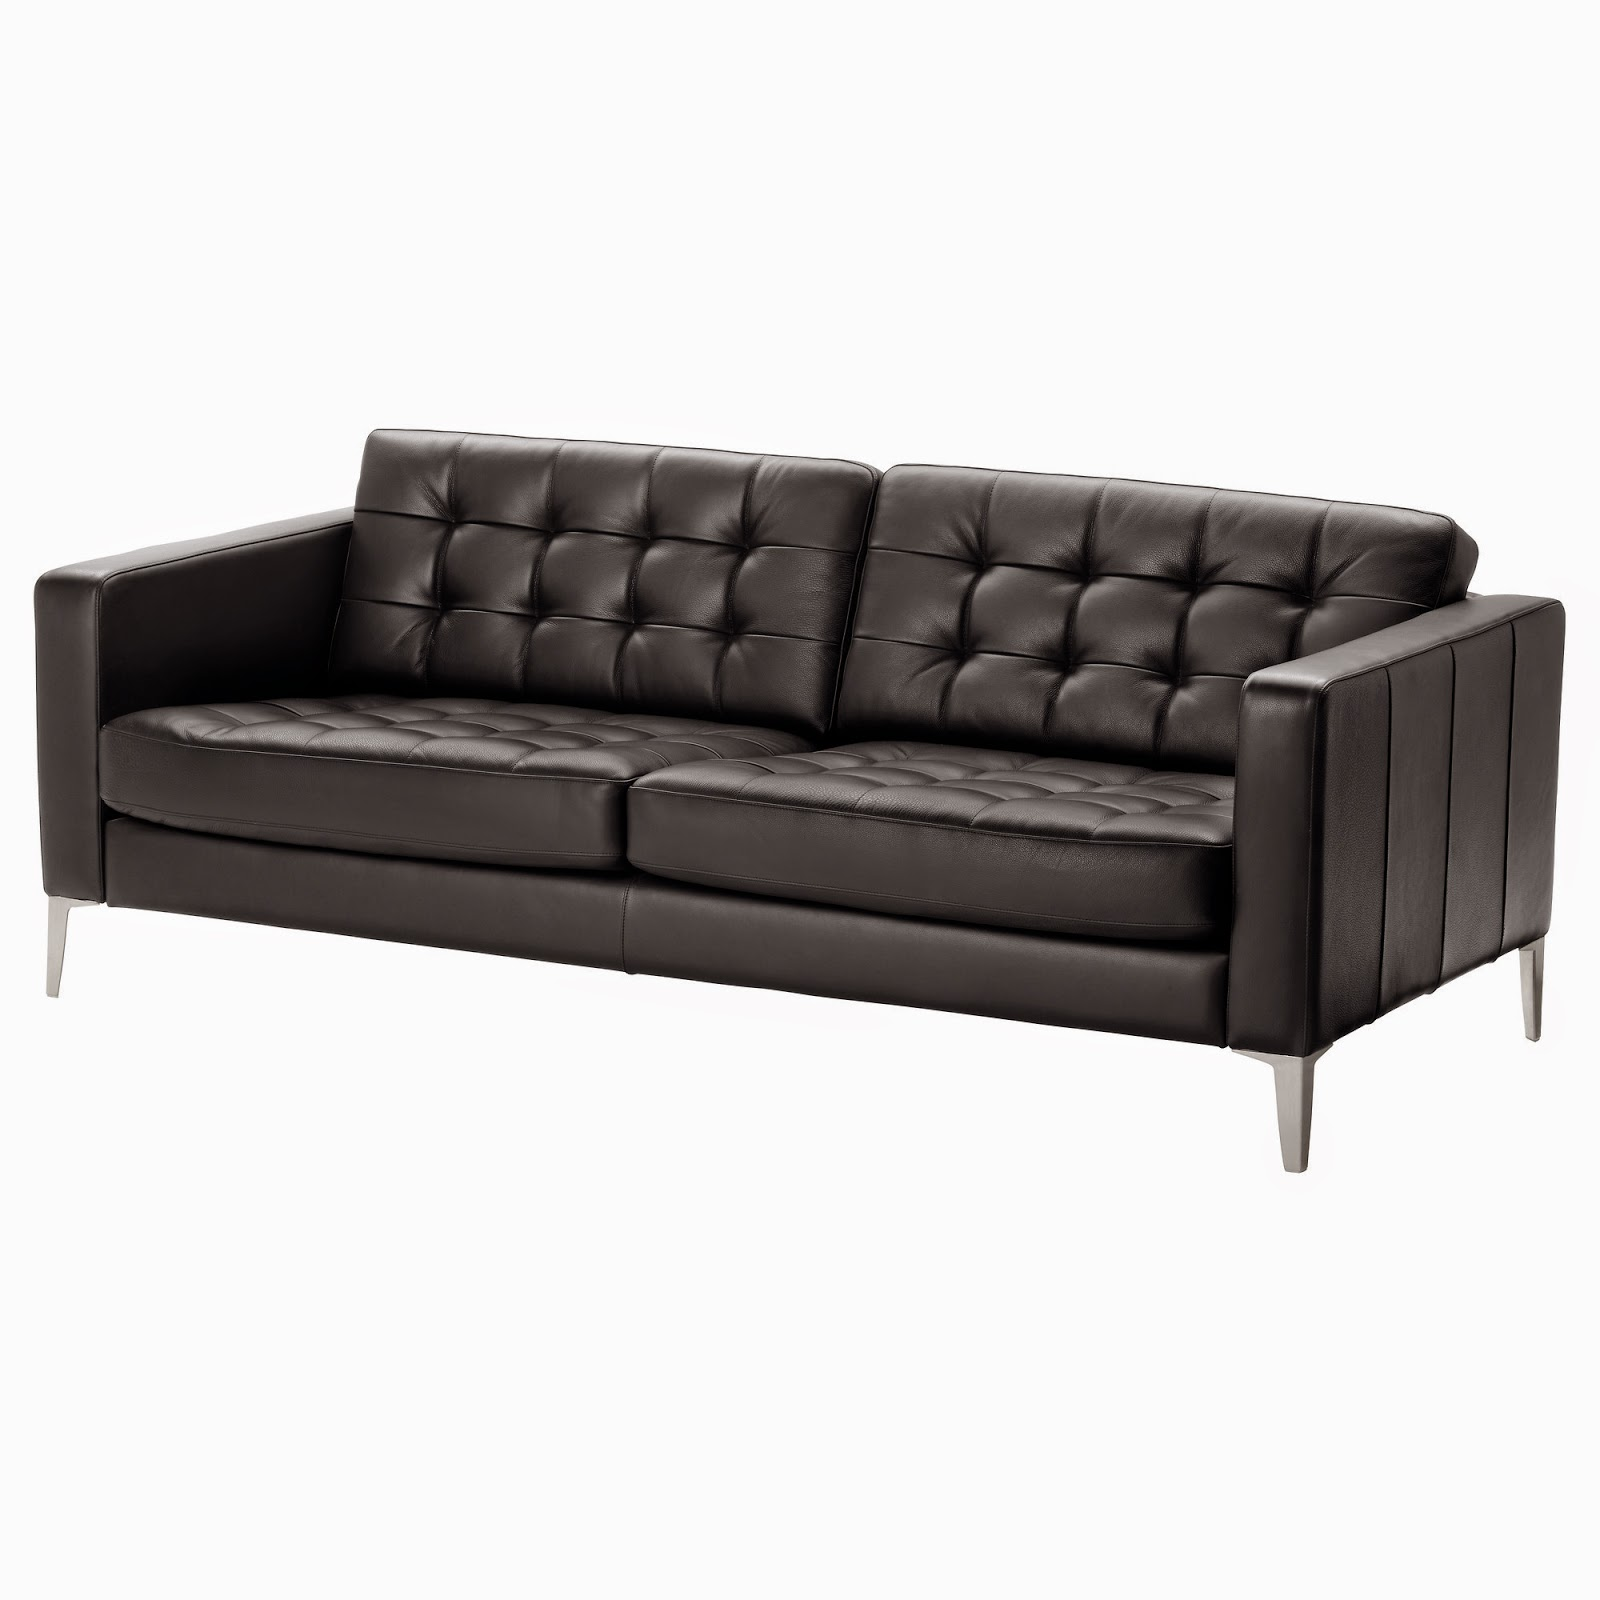 sofa ideas ikea sofa set. Black Bedroom Furniture Sets. Home Design Ideas